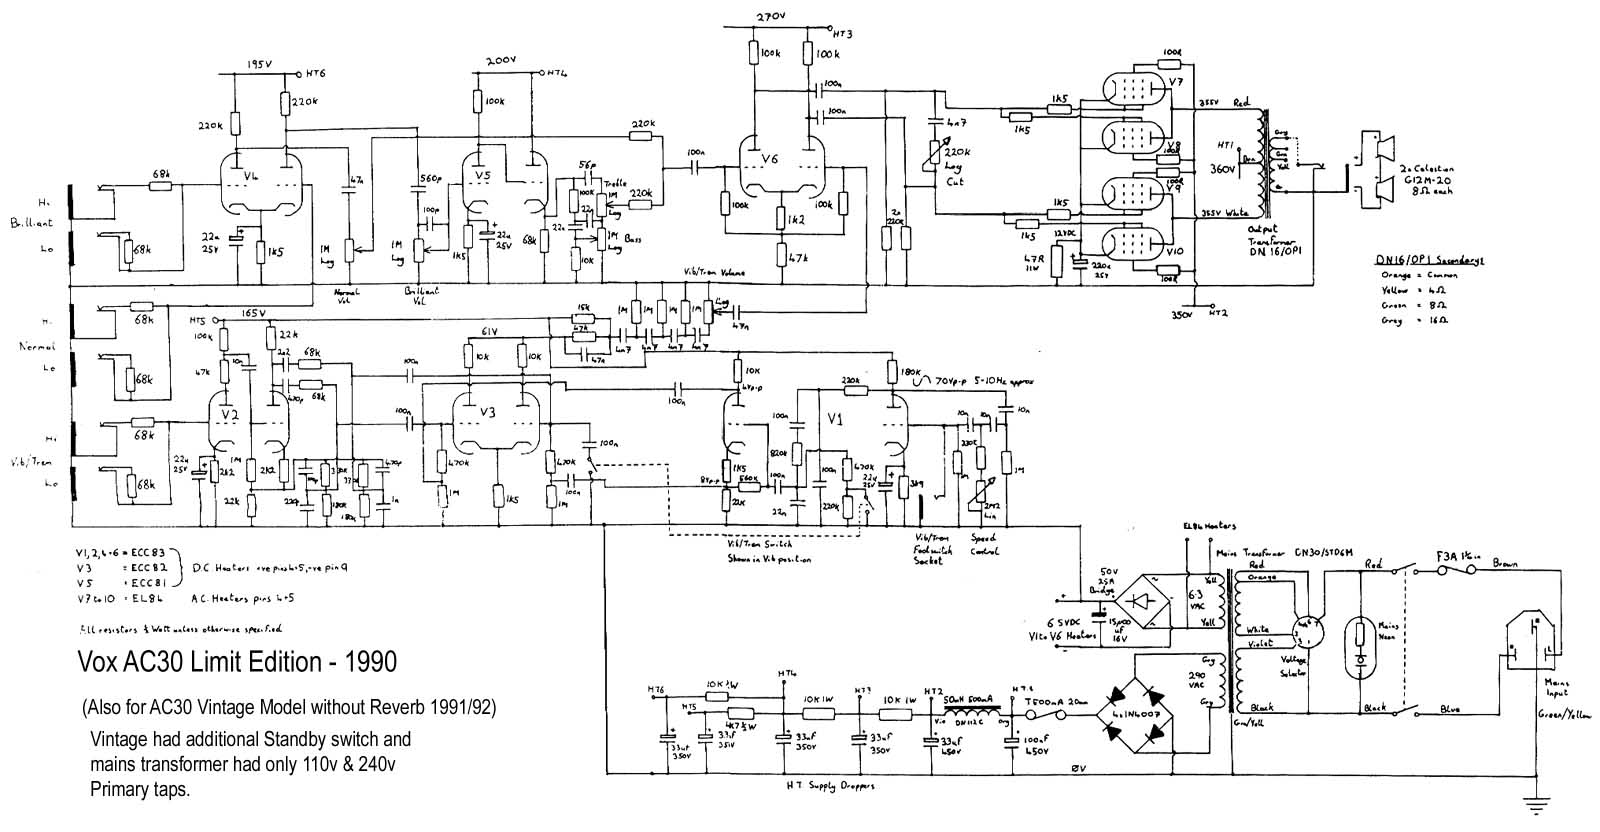 Vox Vintage Circuit Diagrams Board Schematics Further Diagram Electrical Drawing Download